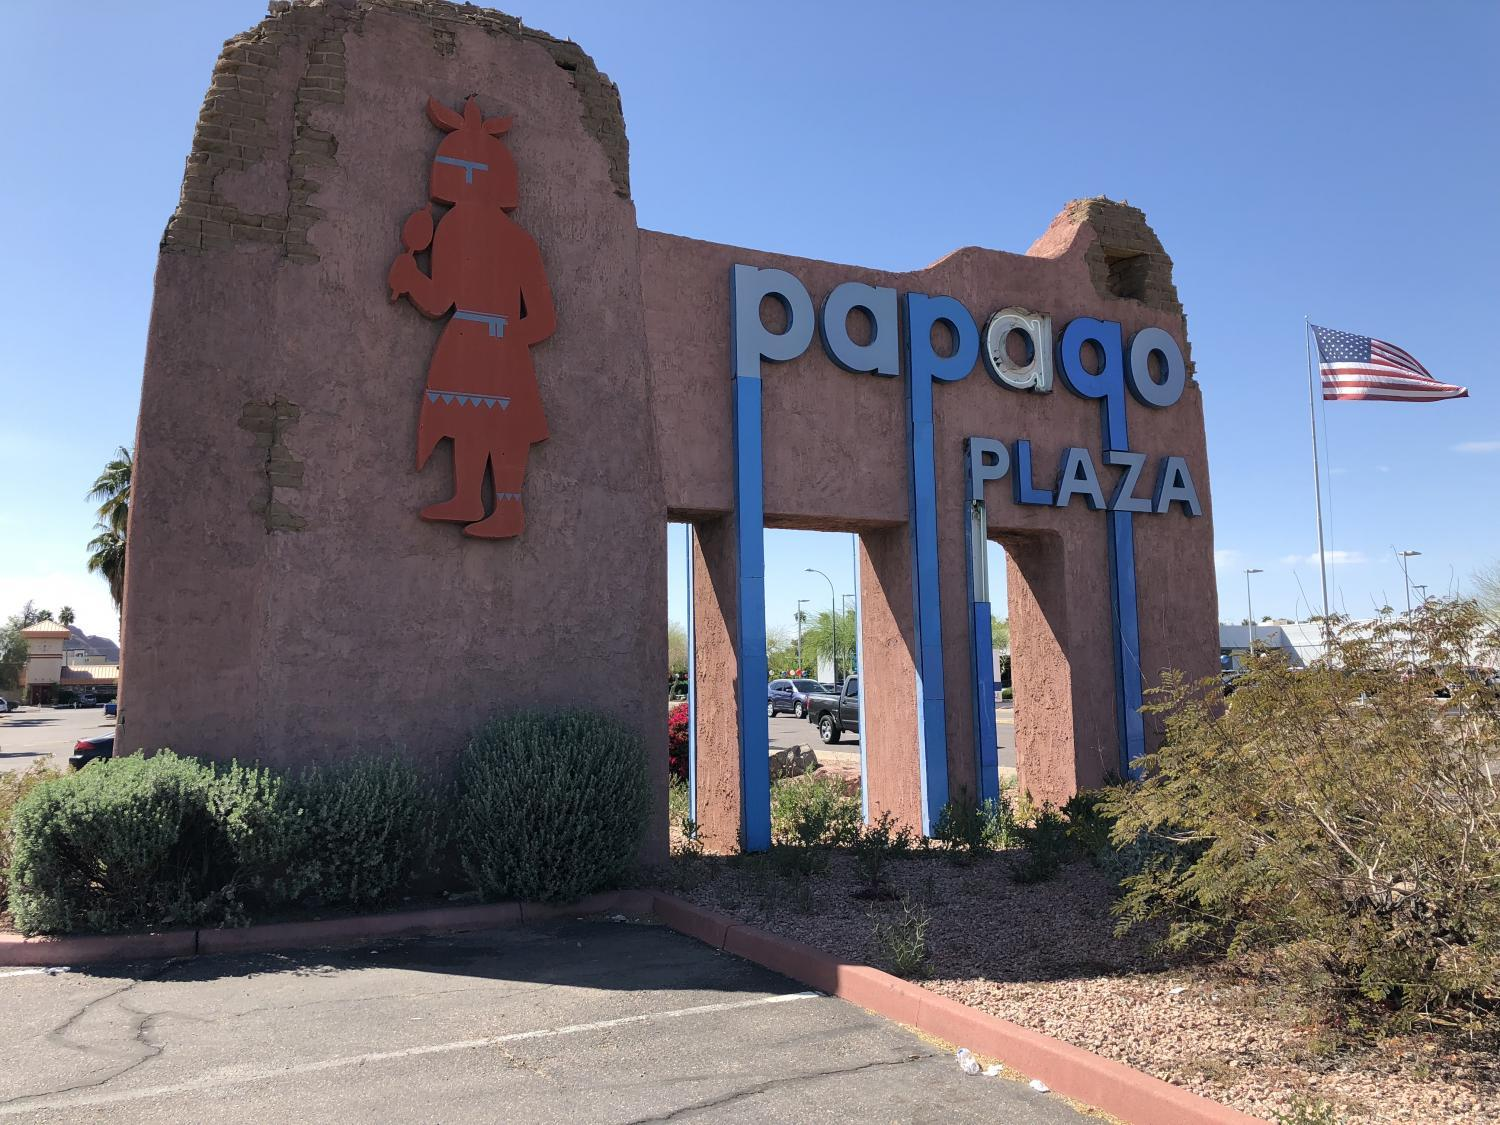 Papago Plaza